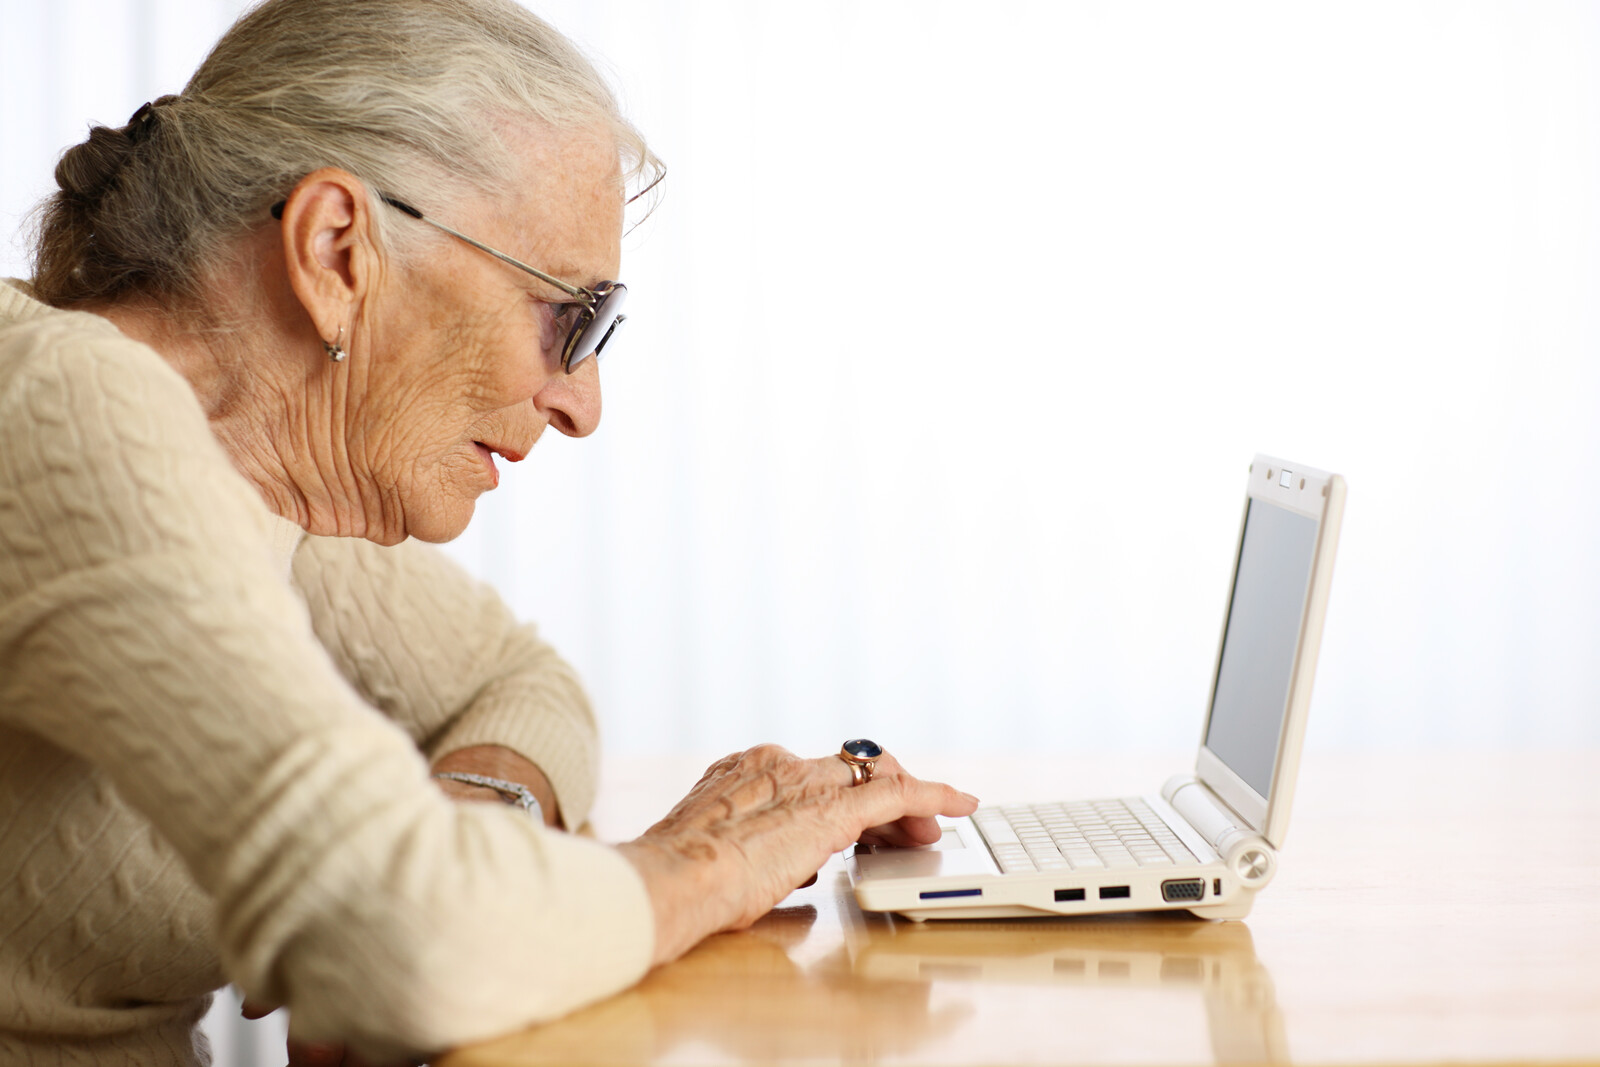 Elderly woman typing on portable laptop computer